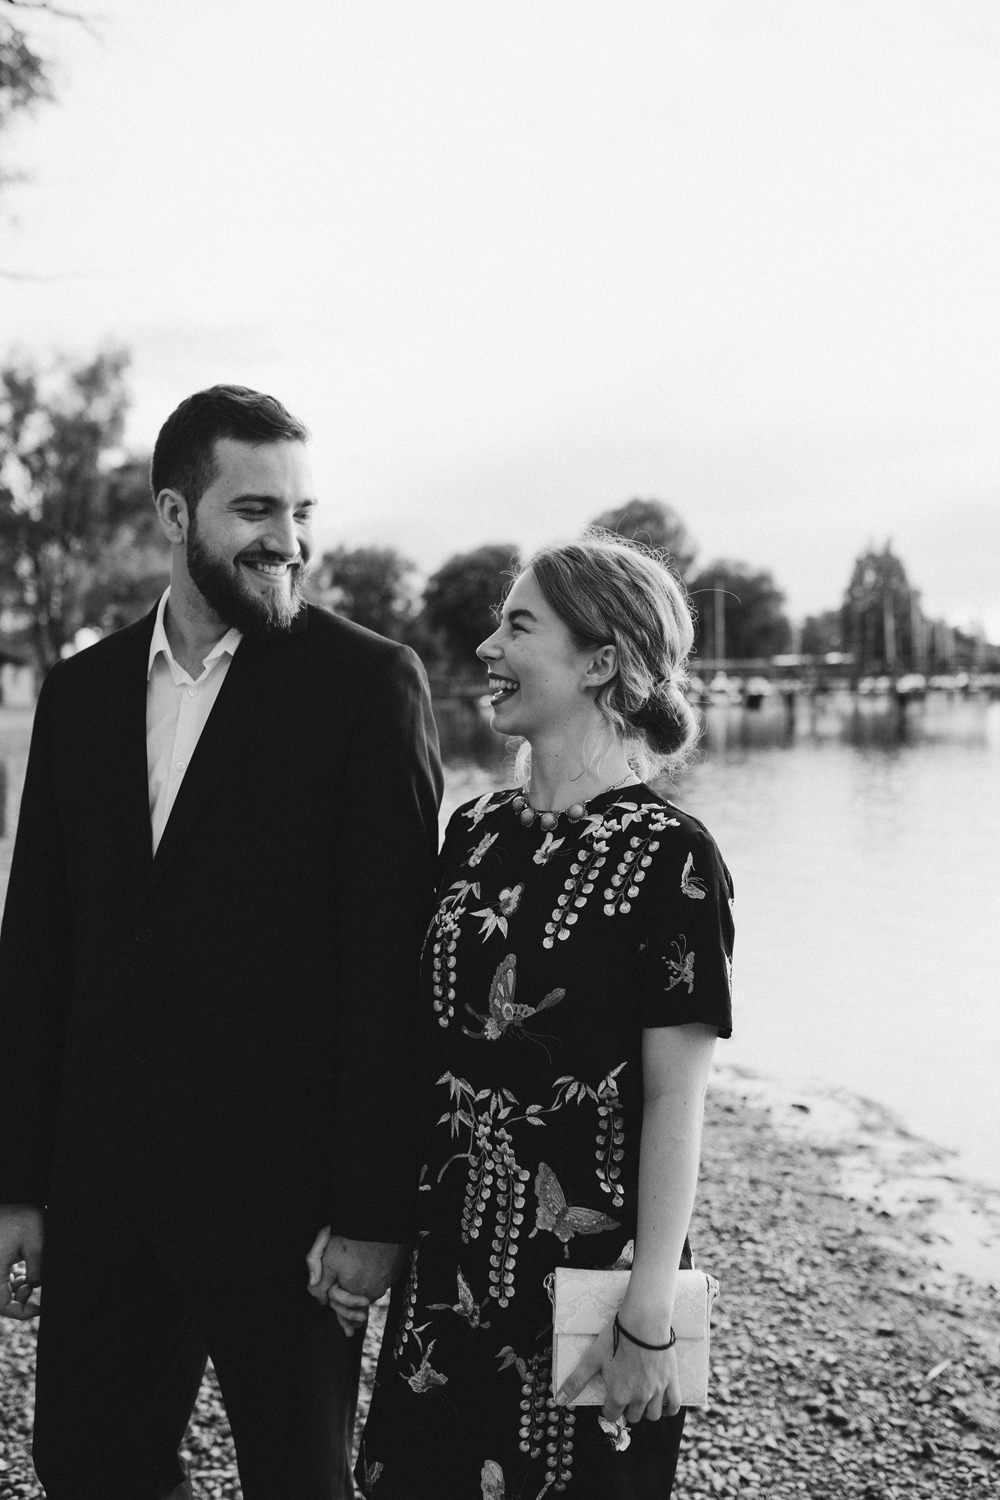 Couple Portrait, Visual Diary on The Curly Head, a Blog from Munich, Photography by Amelie Niederbuchner